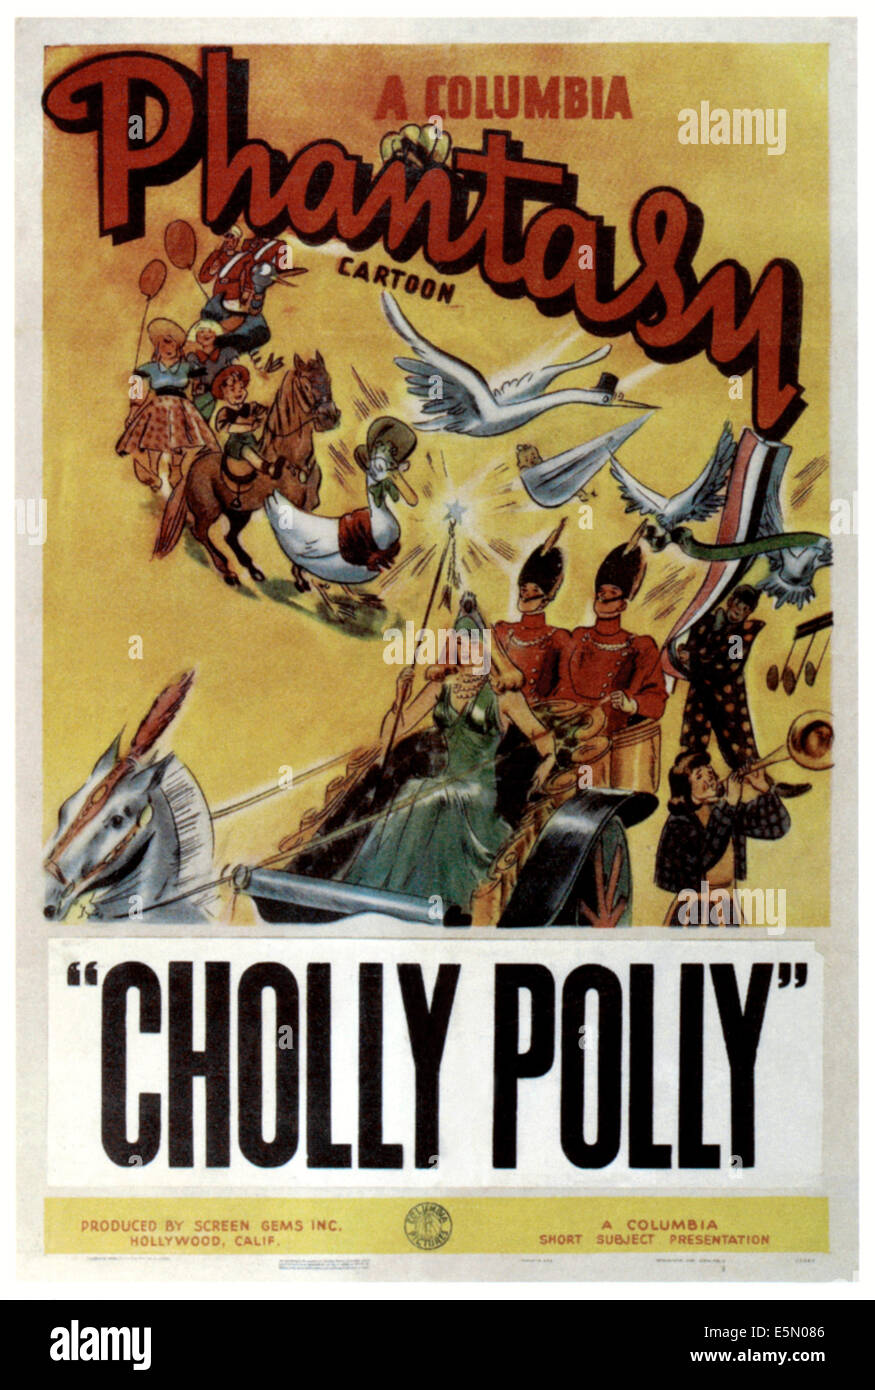 CHOLLY POLLY, poster art, 1942. - Stock Image